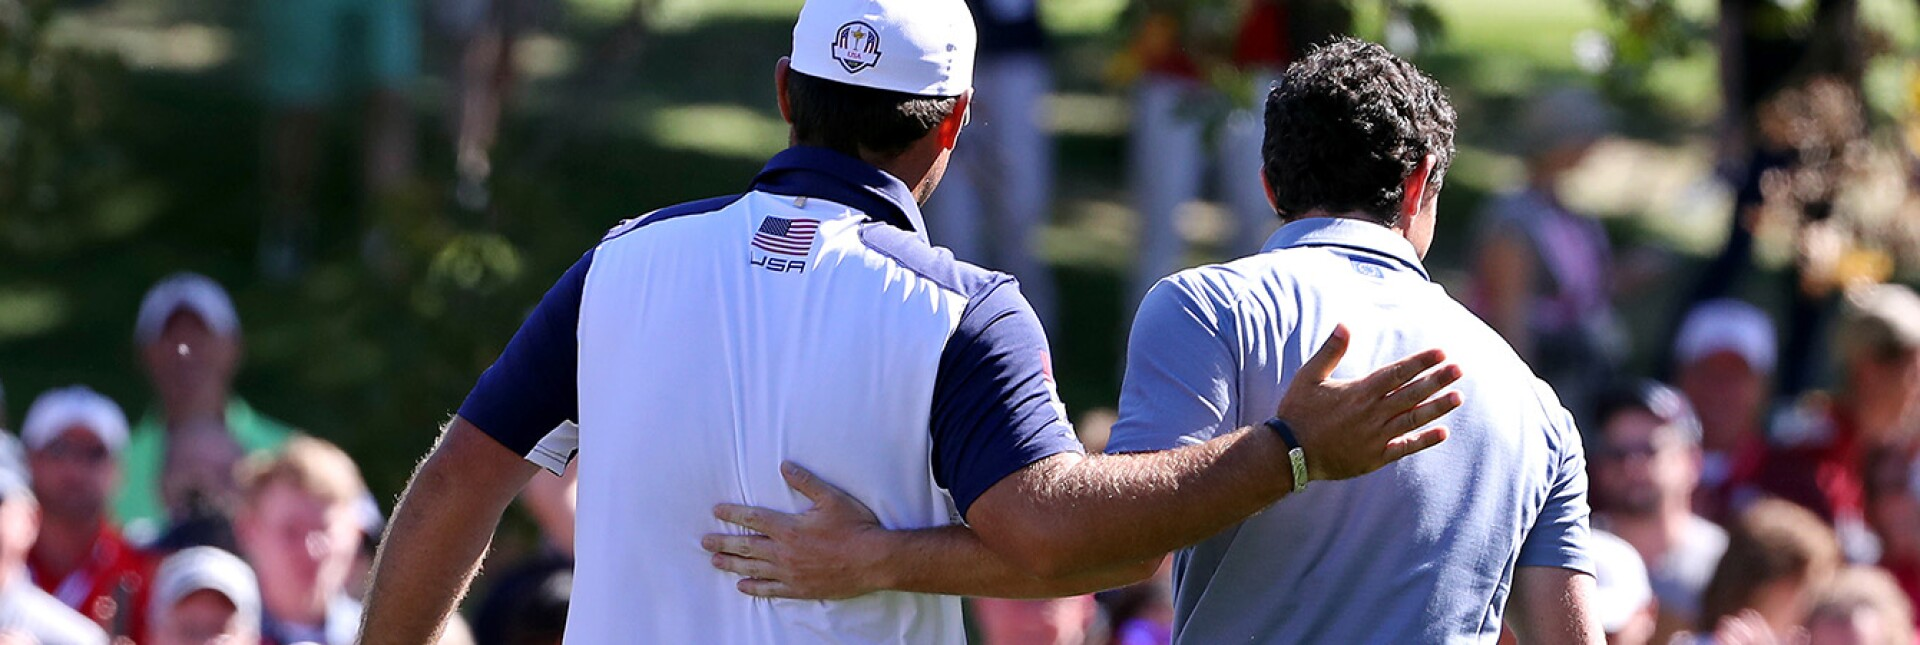 Patrick-Reed-Rory-McIlroy-Ryder-Cup.jpg